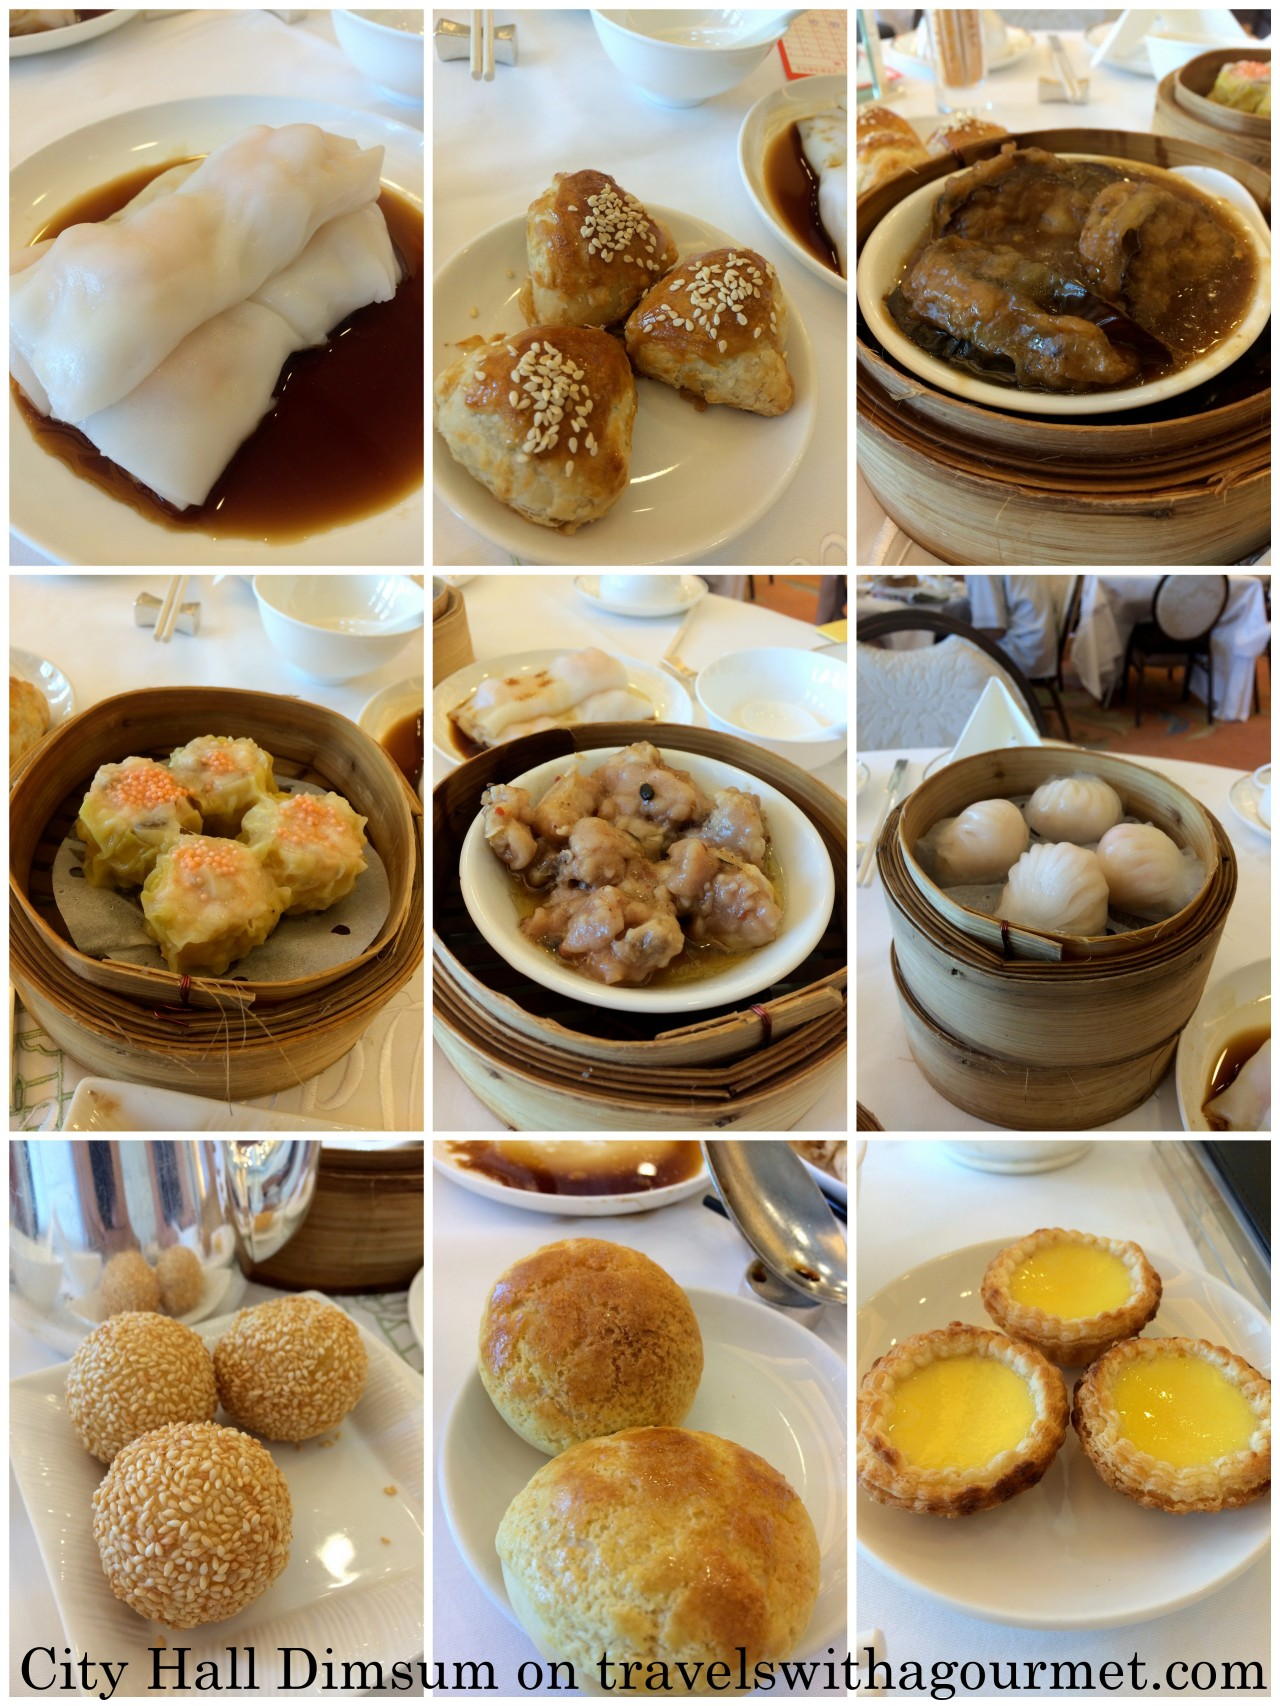 PCasa GT Hong Kong, City Hall Dimsum